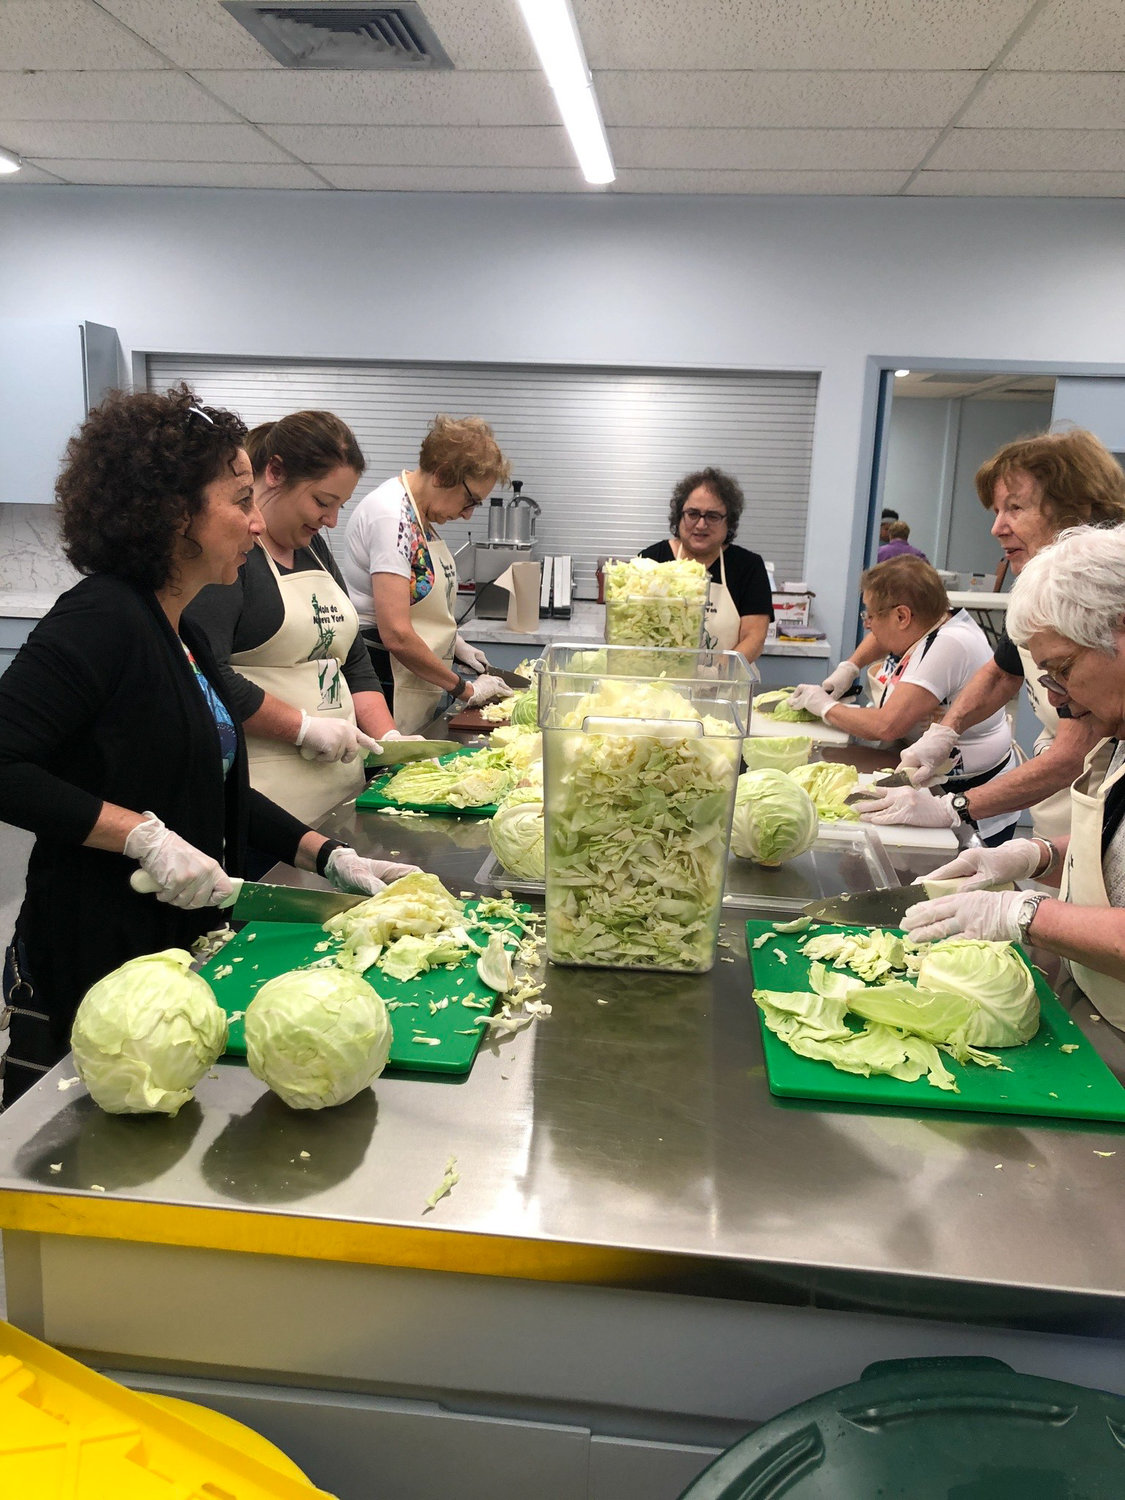 Volunteers chop lettuce to help World Central Kitchen serve food to asylum seekers in Matamoros, Mexico. The organization is providing fresh, culturally familiar food to some 1,500 people waiting for their asylum hearing with the U.S. government.